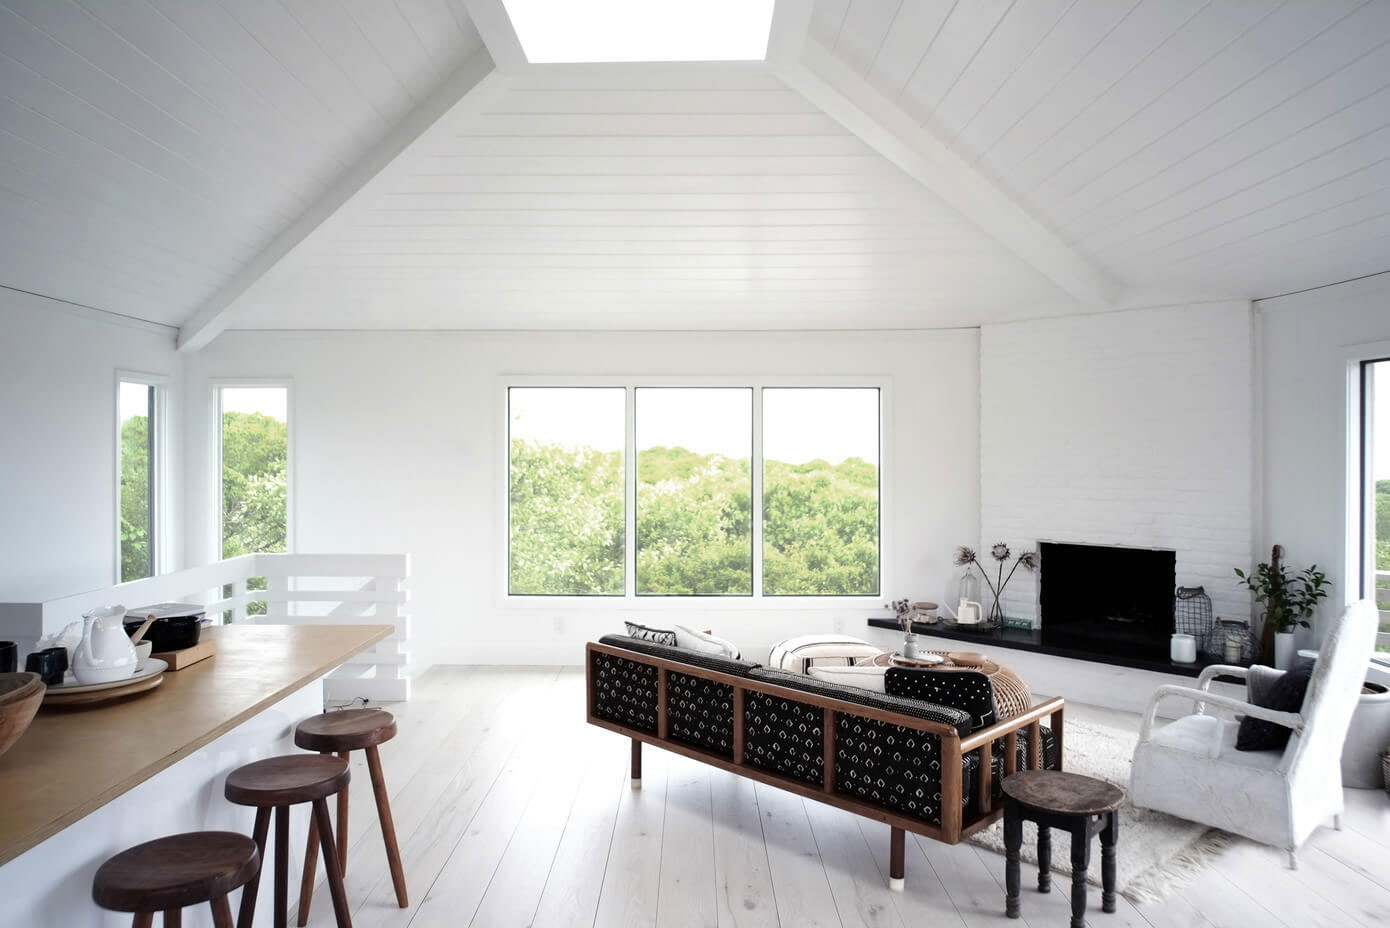 Space Exploration Designs a Beach Home in Montauk, New York